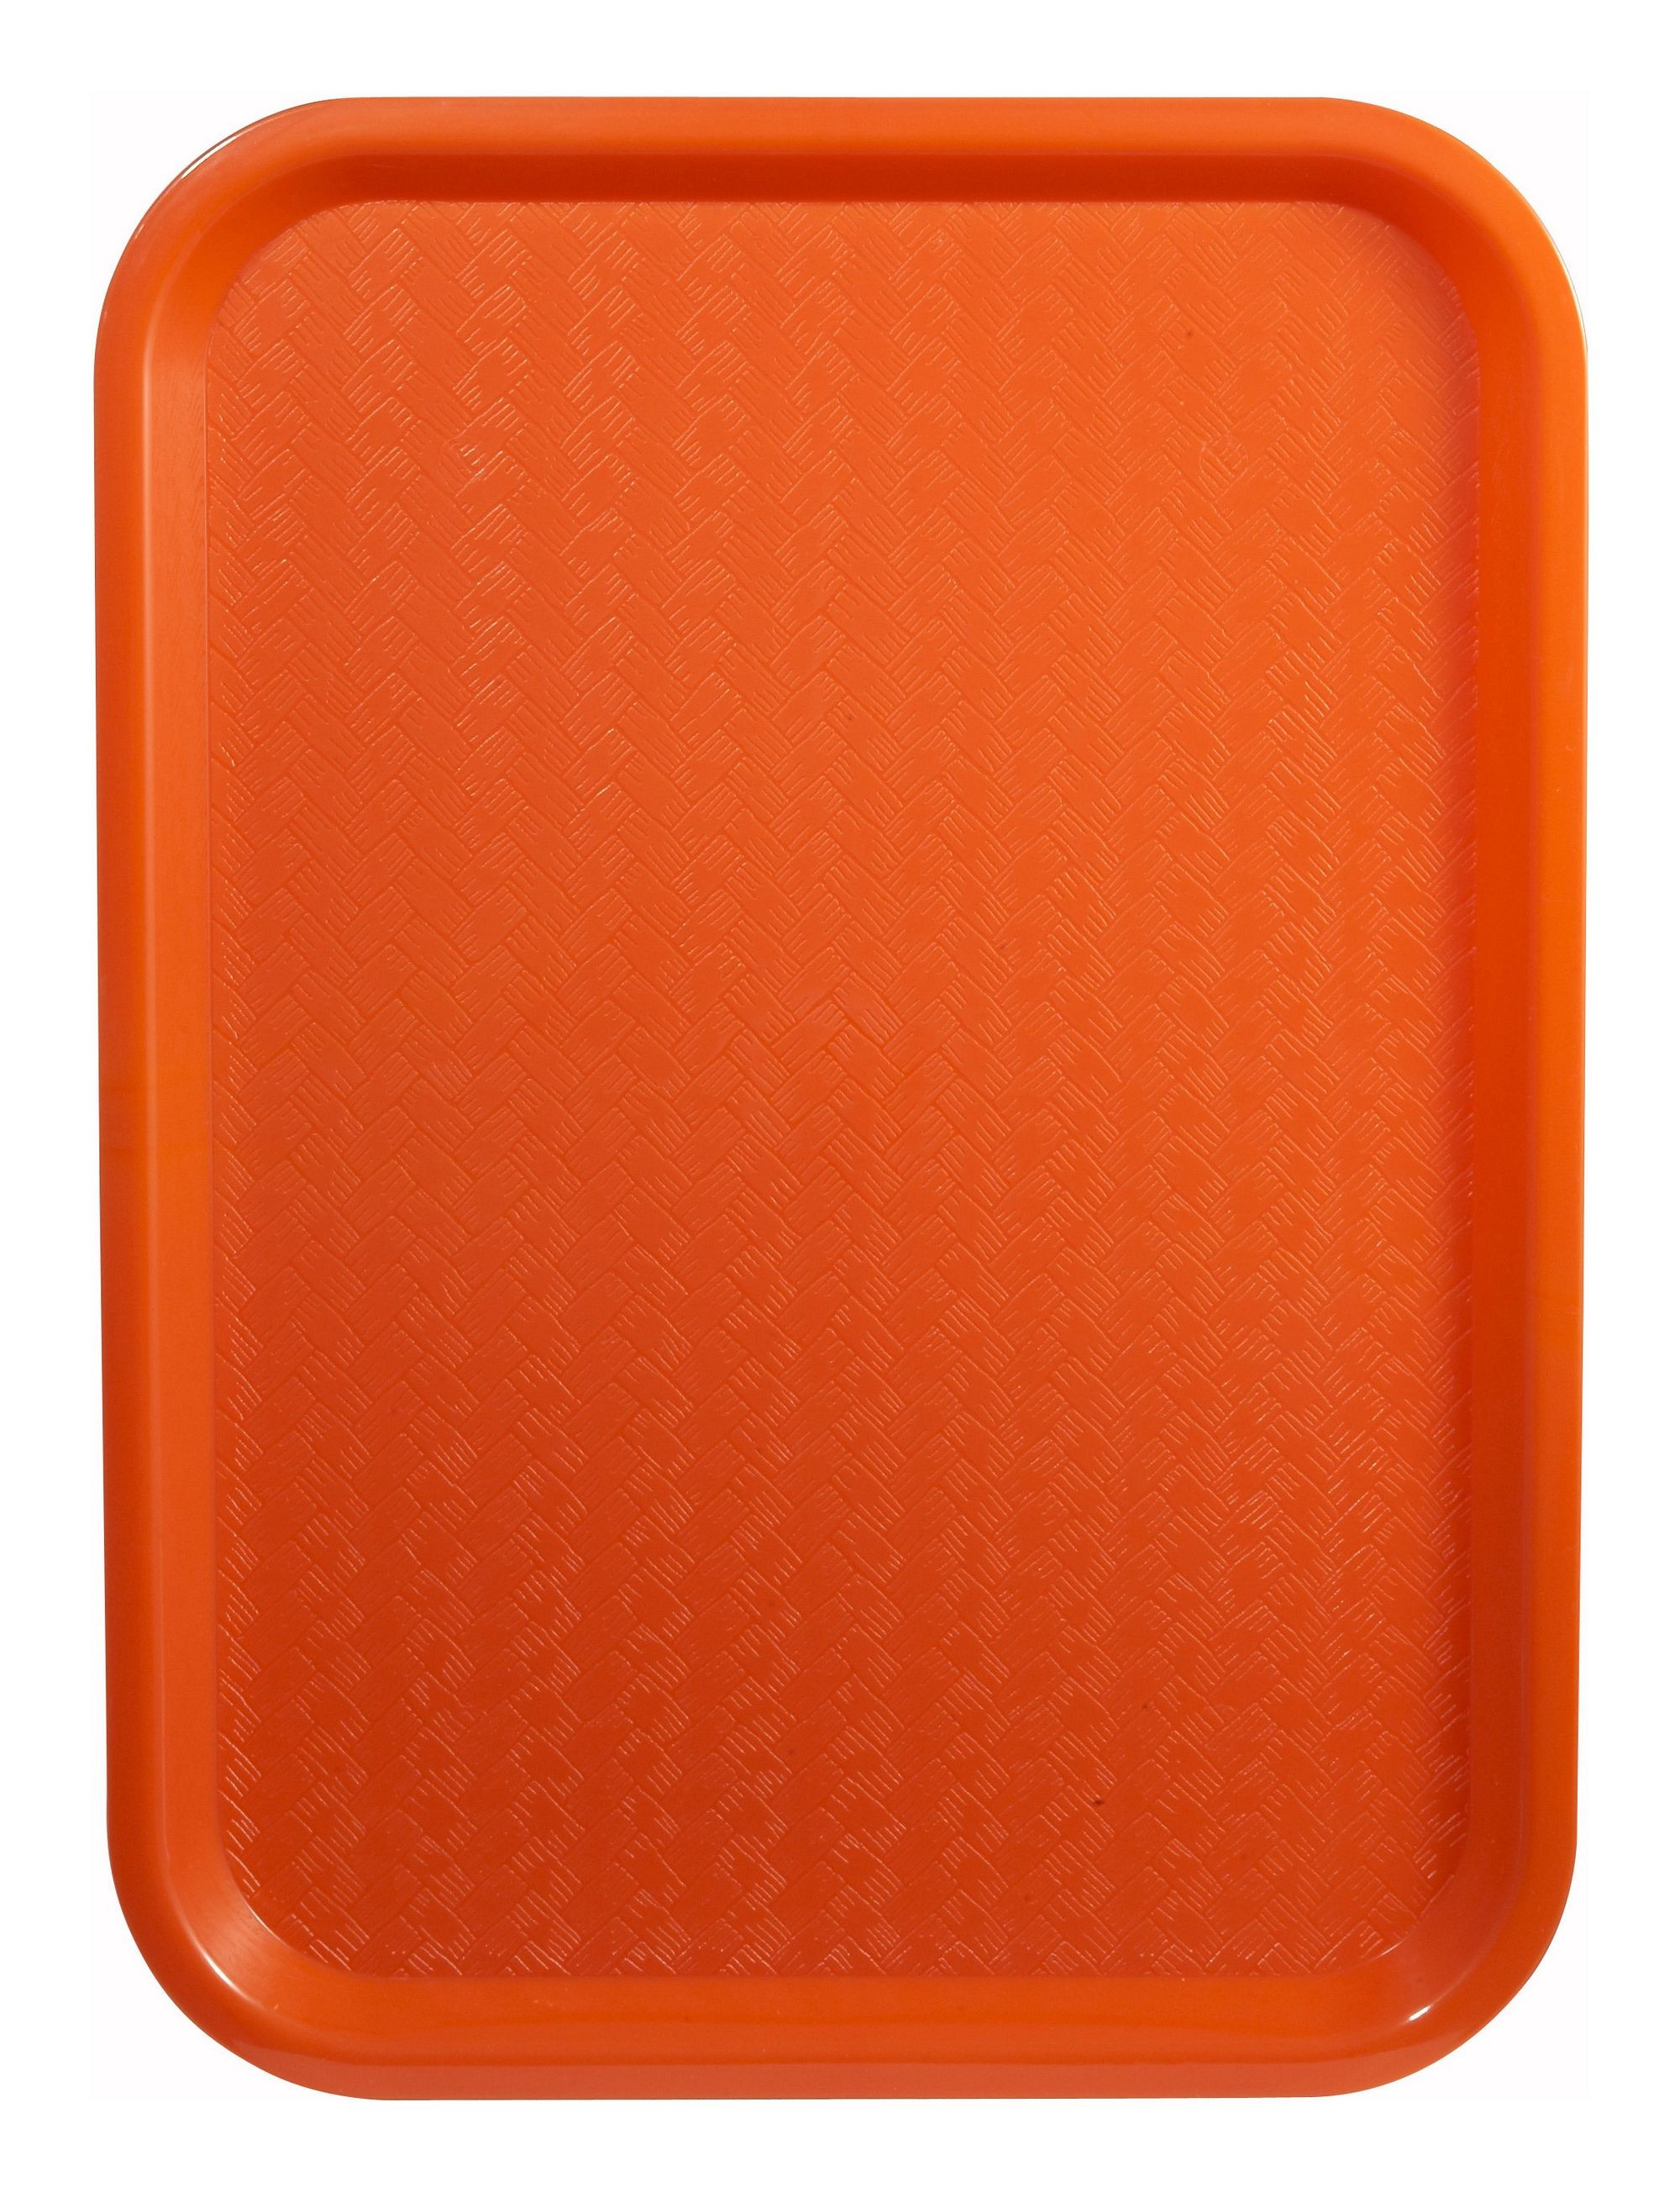 Premium Plastic Fast Food Tray 10 x 14 (Orange)